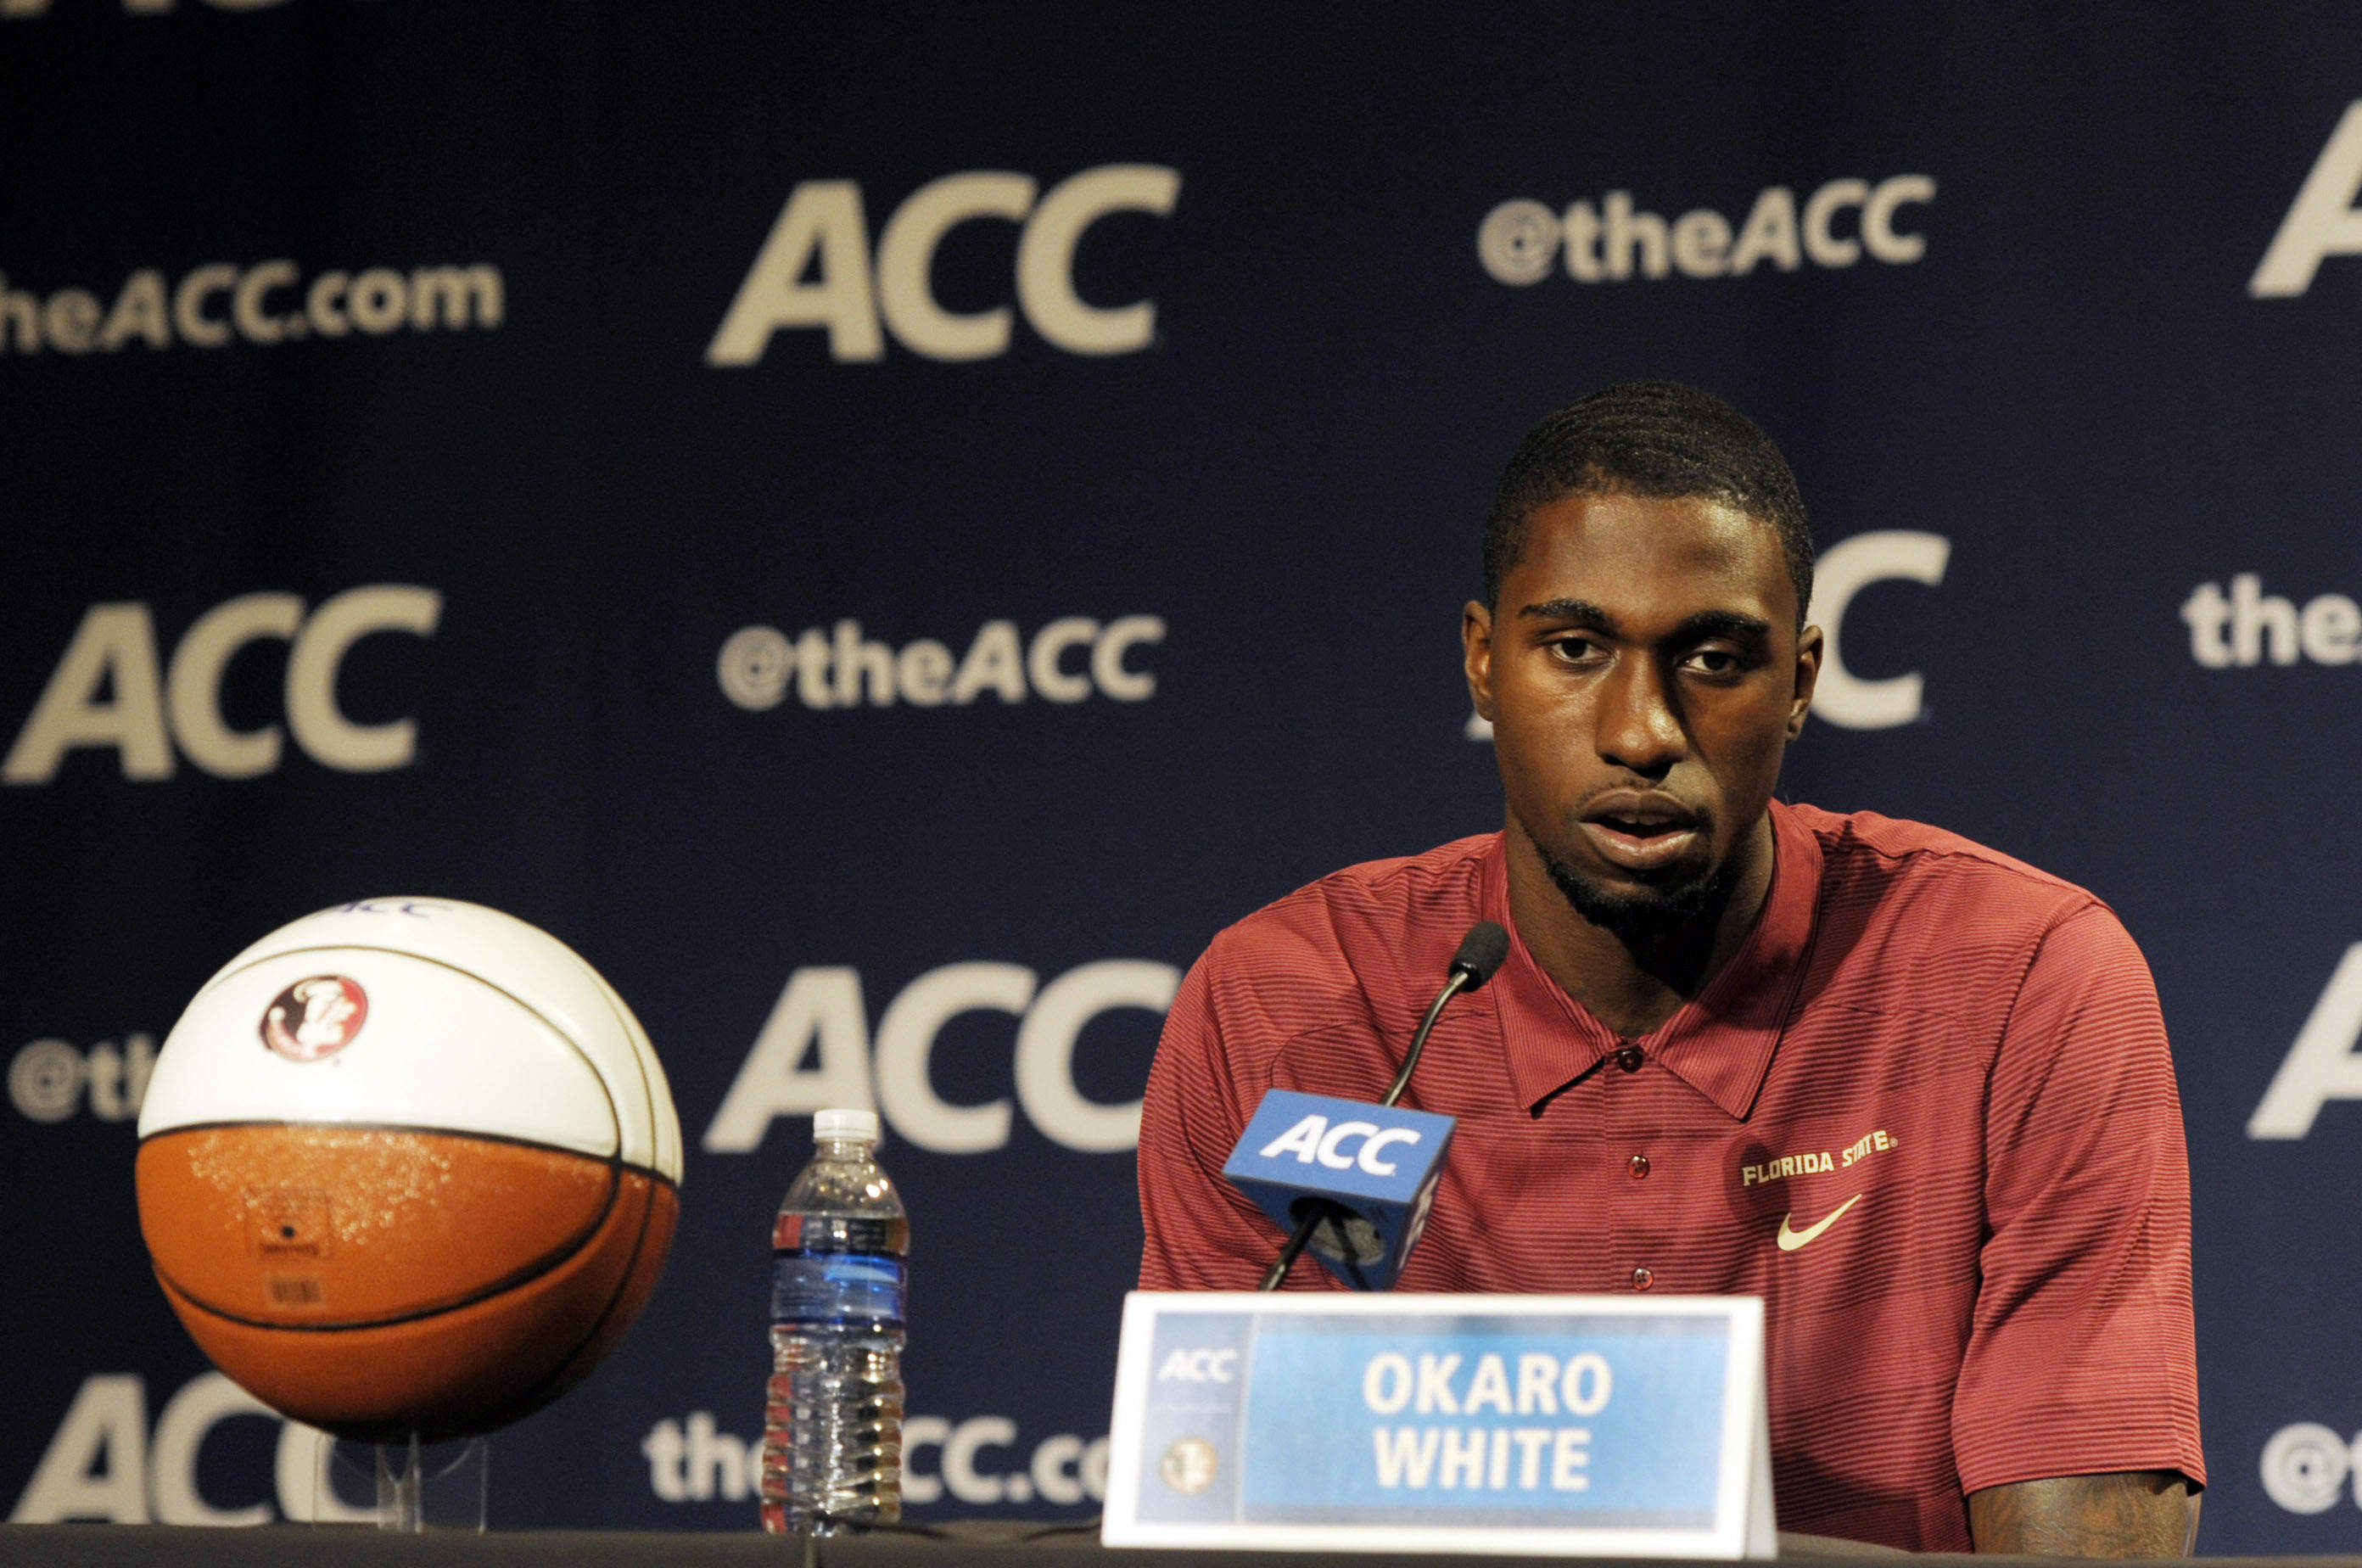 Florida State Seminoles forward Okaro White addresses the media during the ACC basketball media day at The Ritz-Carlton. (Sam Sharpe-USA TODAY Sports)